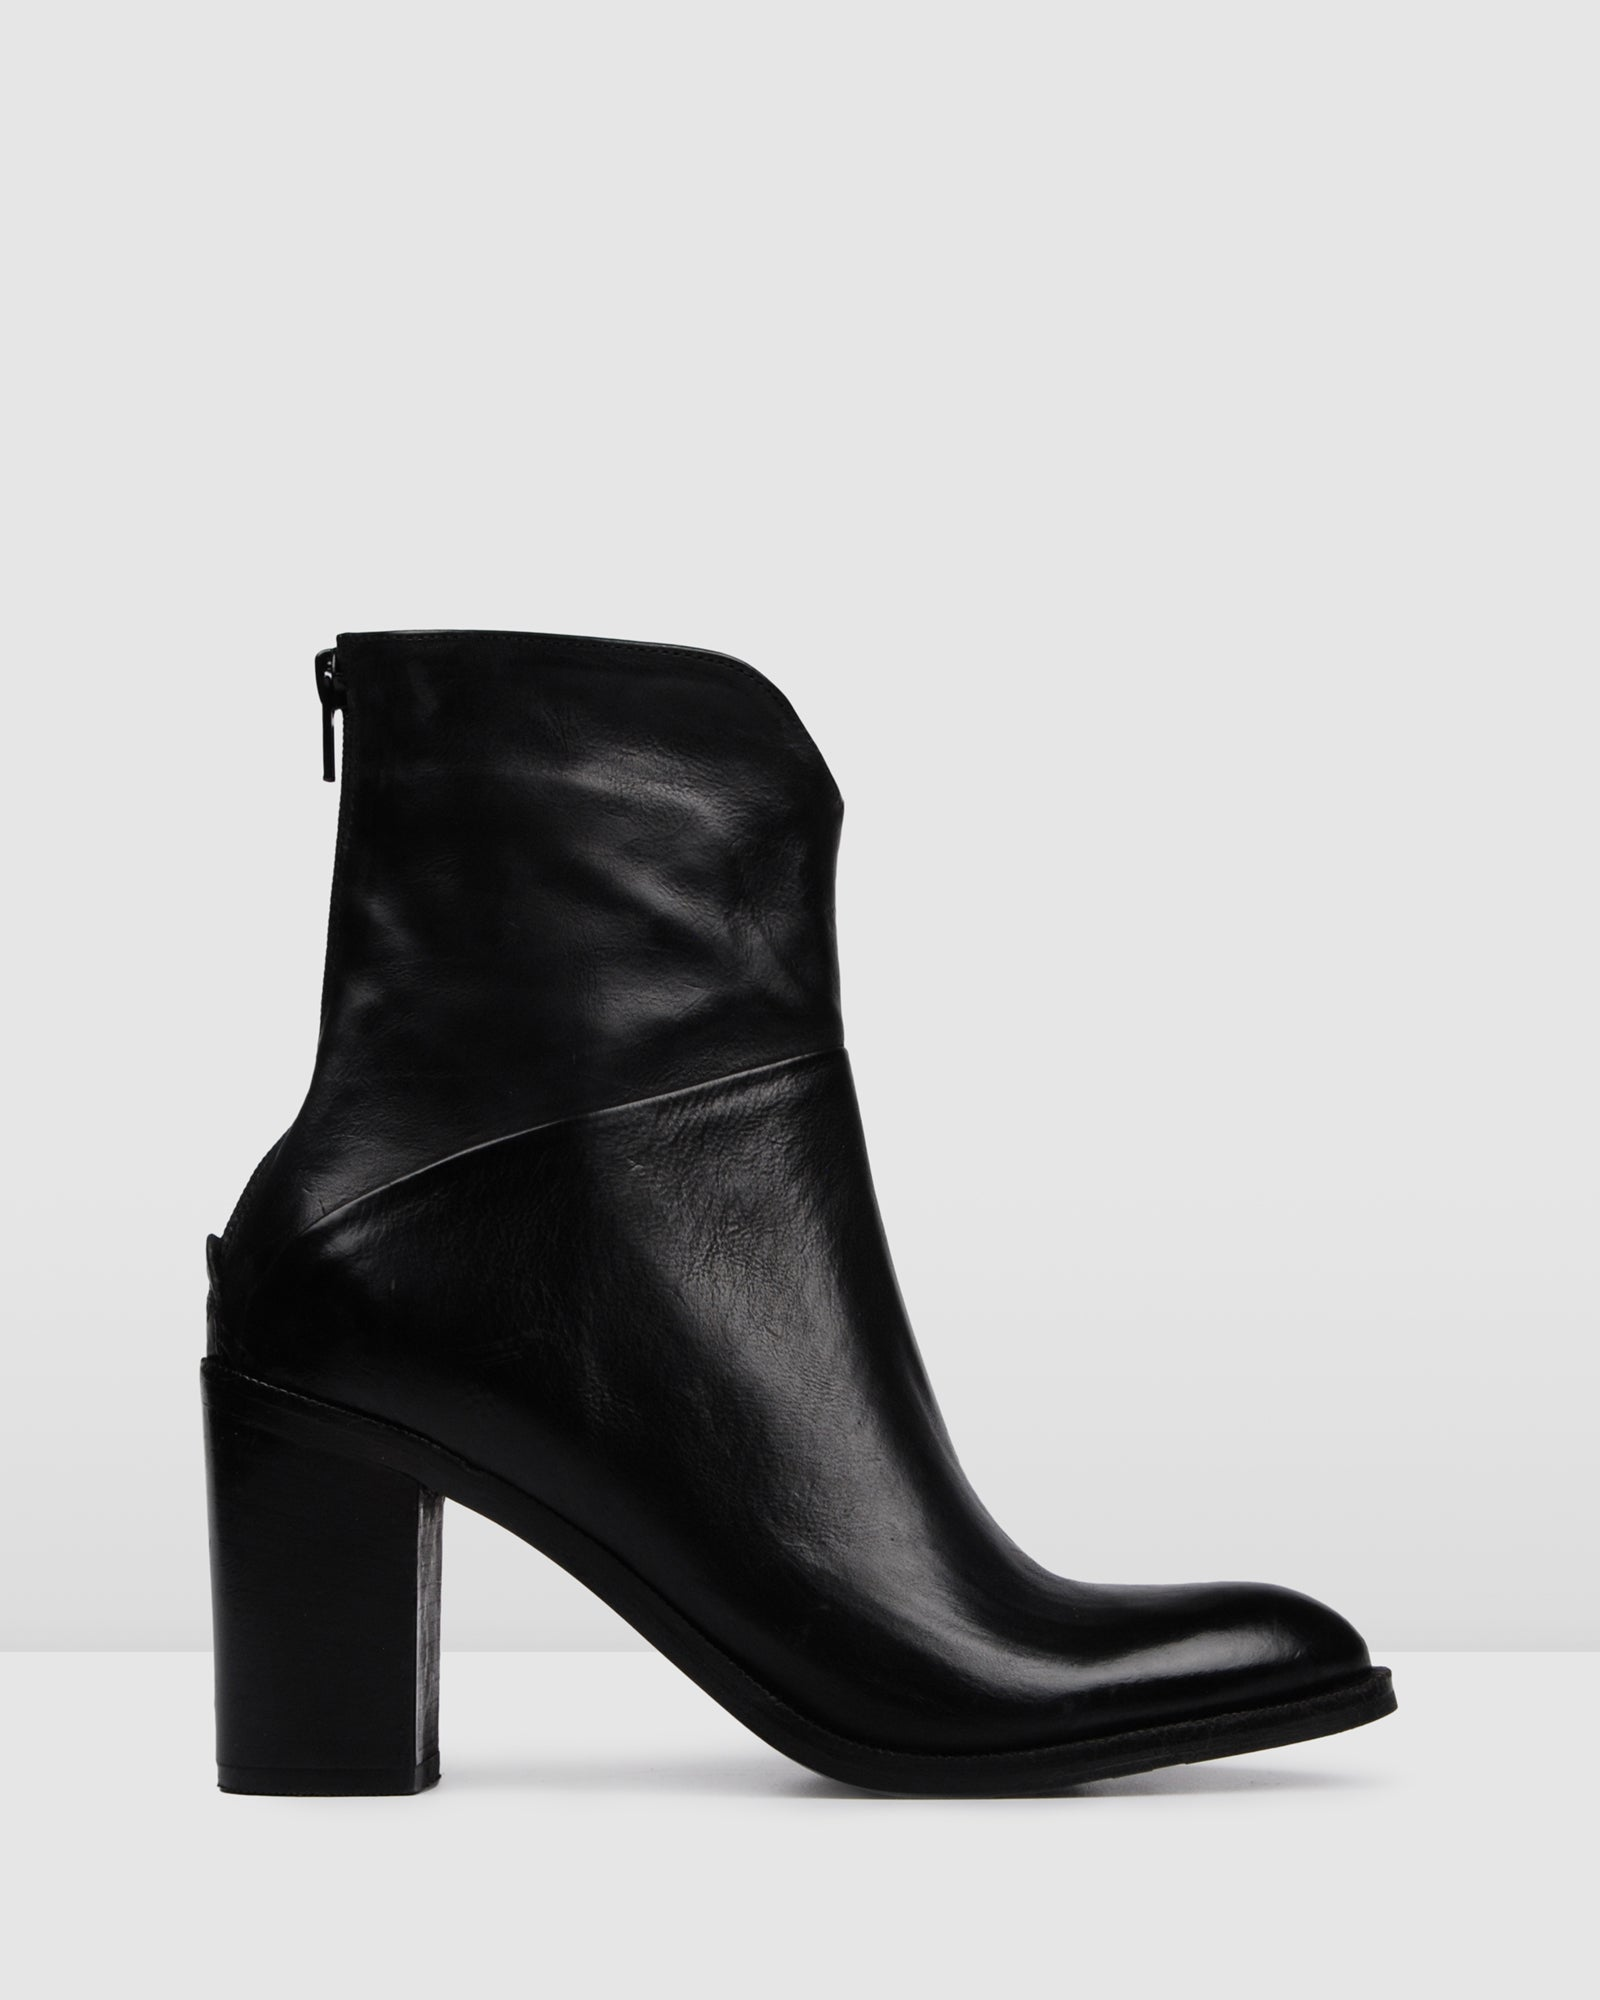 HANIA HIGH ANKLE BOOTS BLACK LEATHER